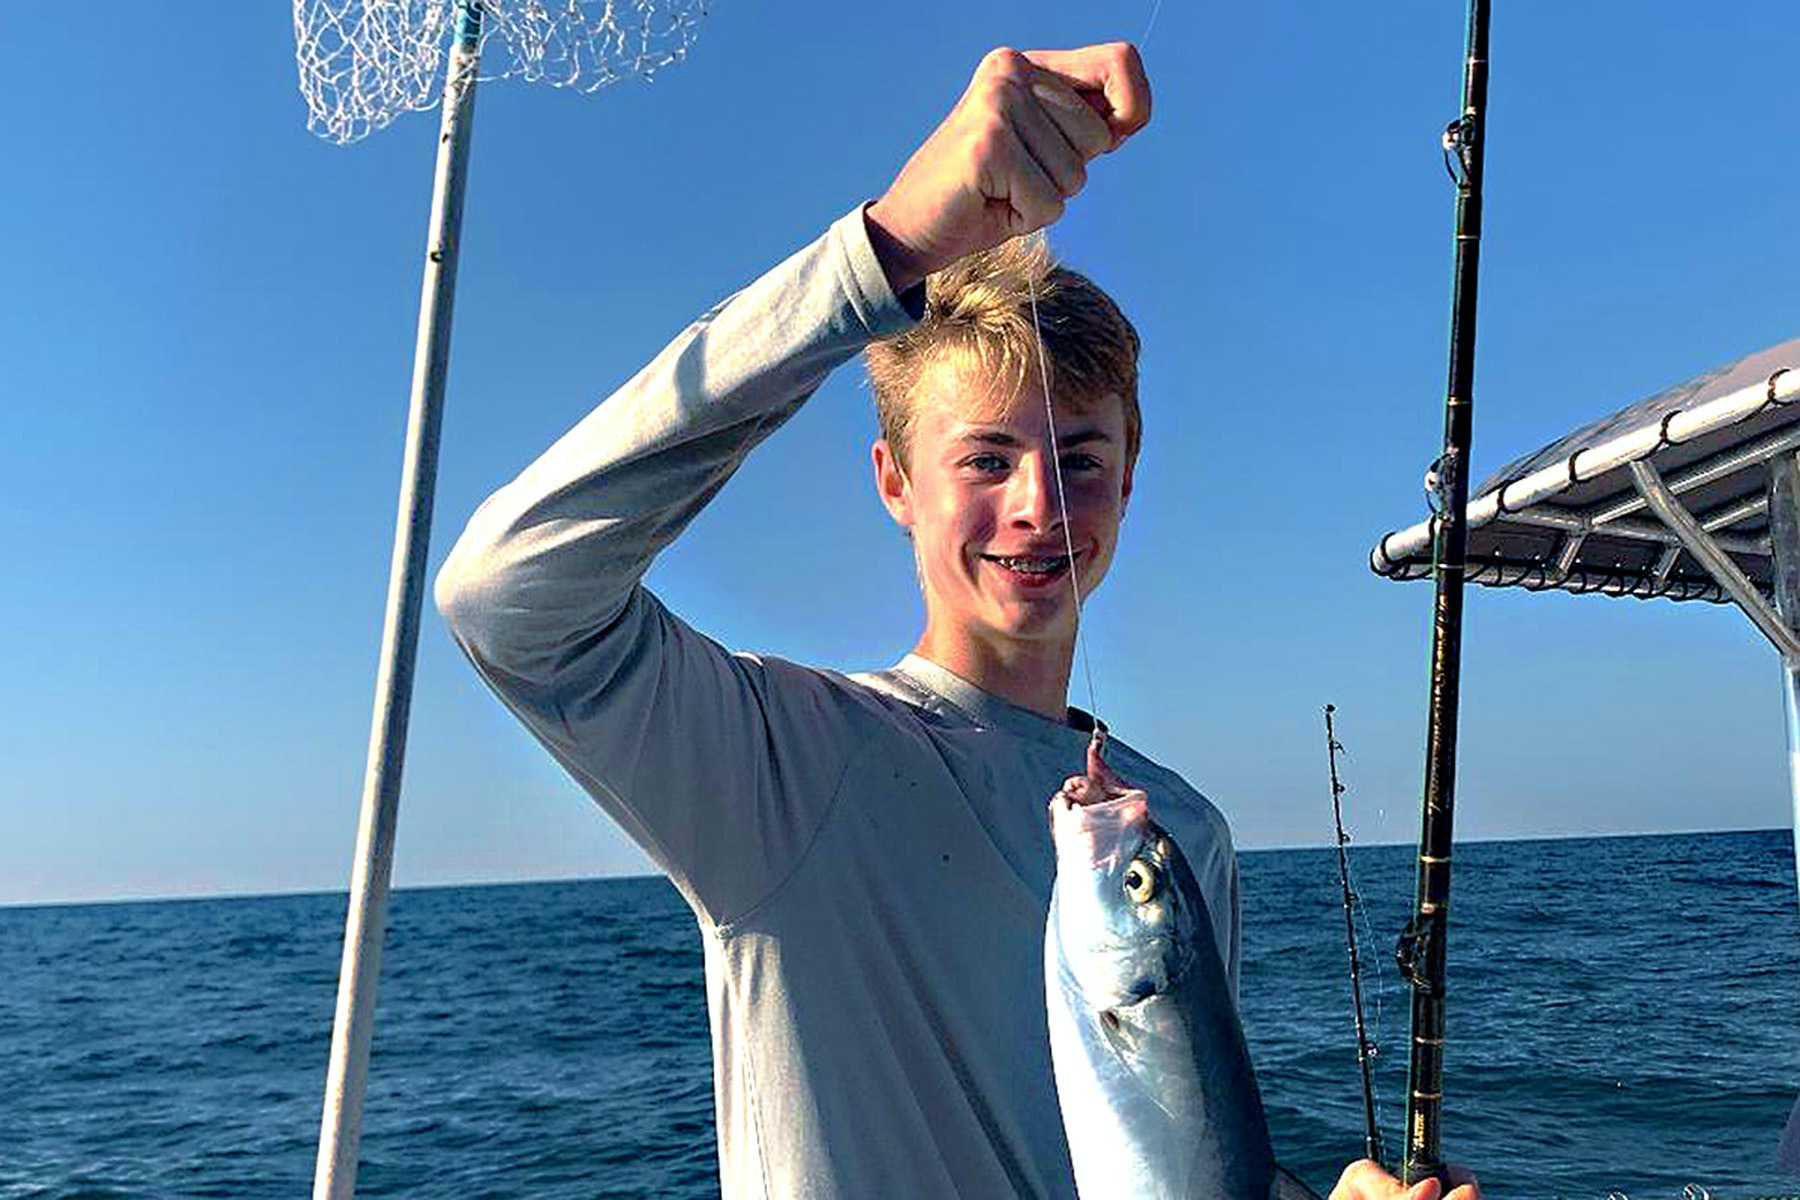 Teenager holding hooked fish on line